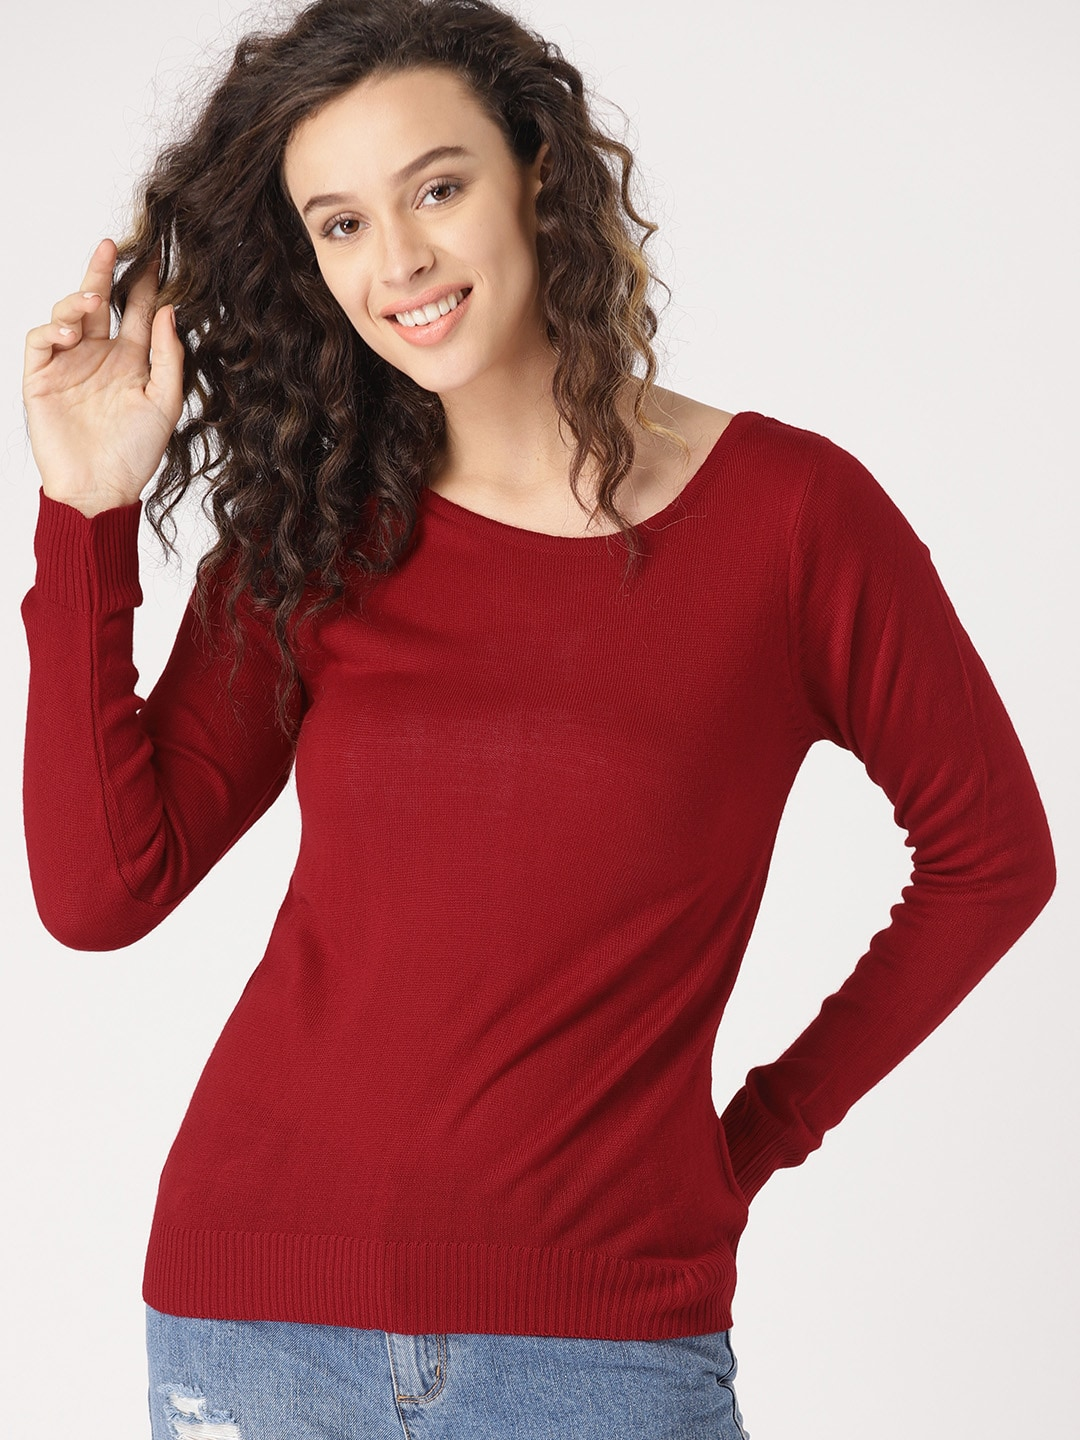 82a7dc5c39 Dressberry Sweaters - Buy Dressberry Sweaters online in India